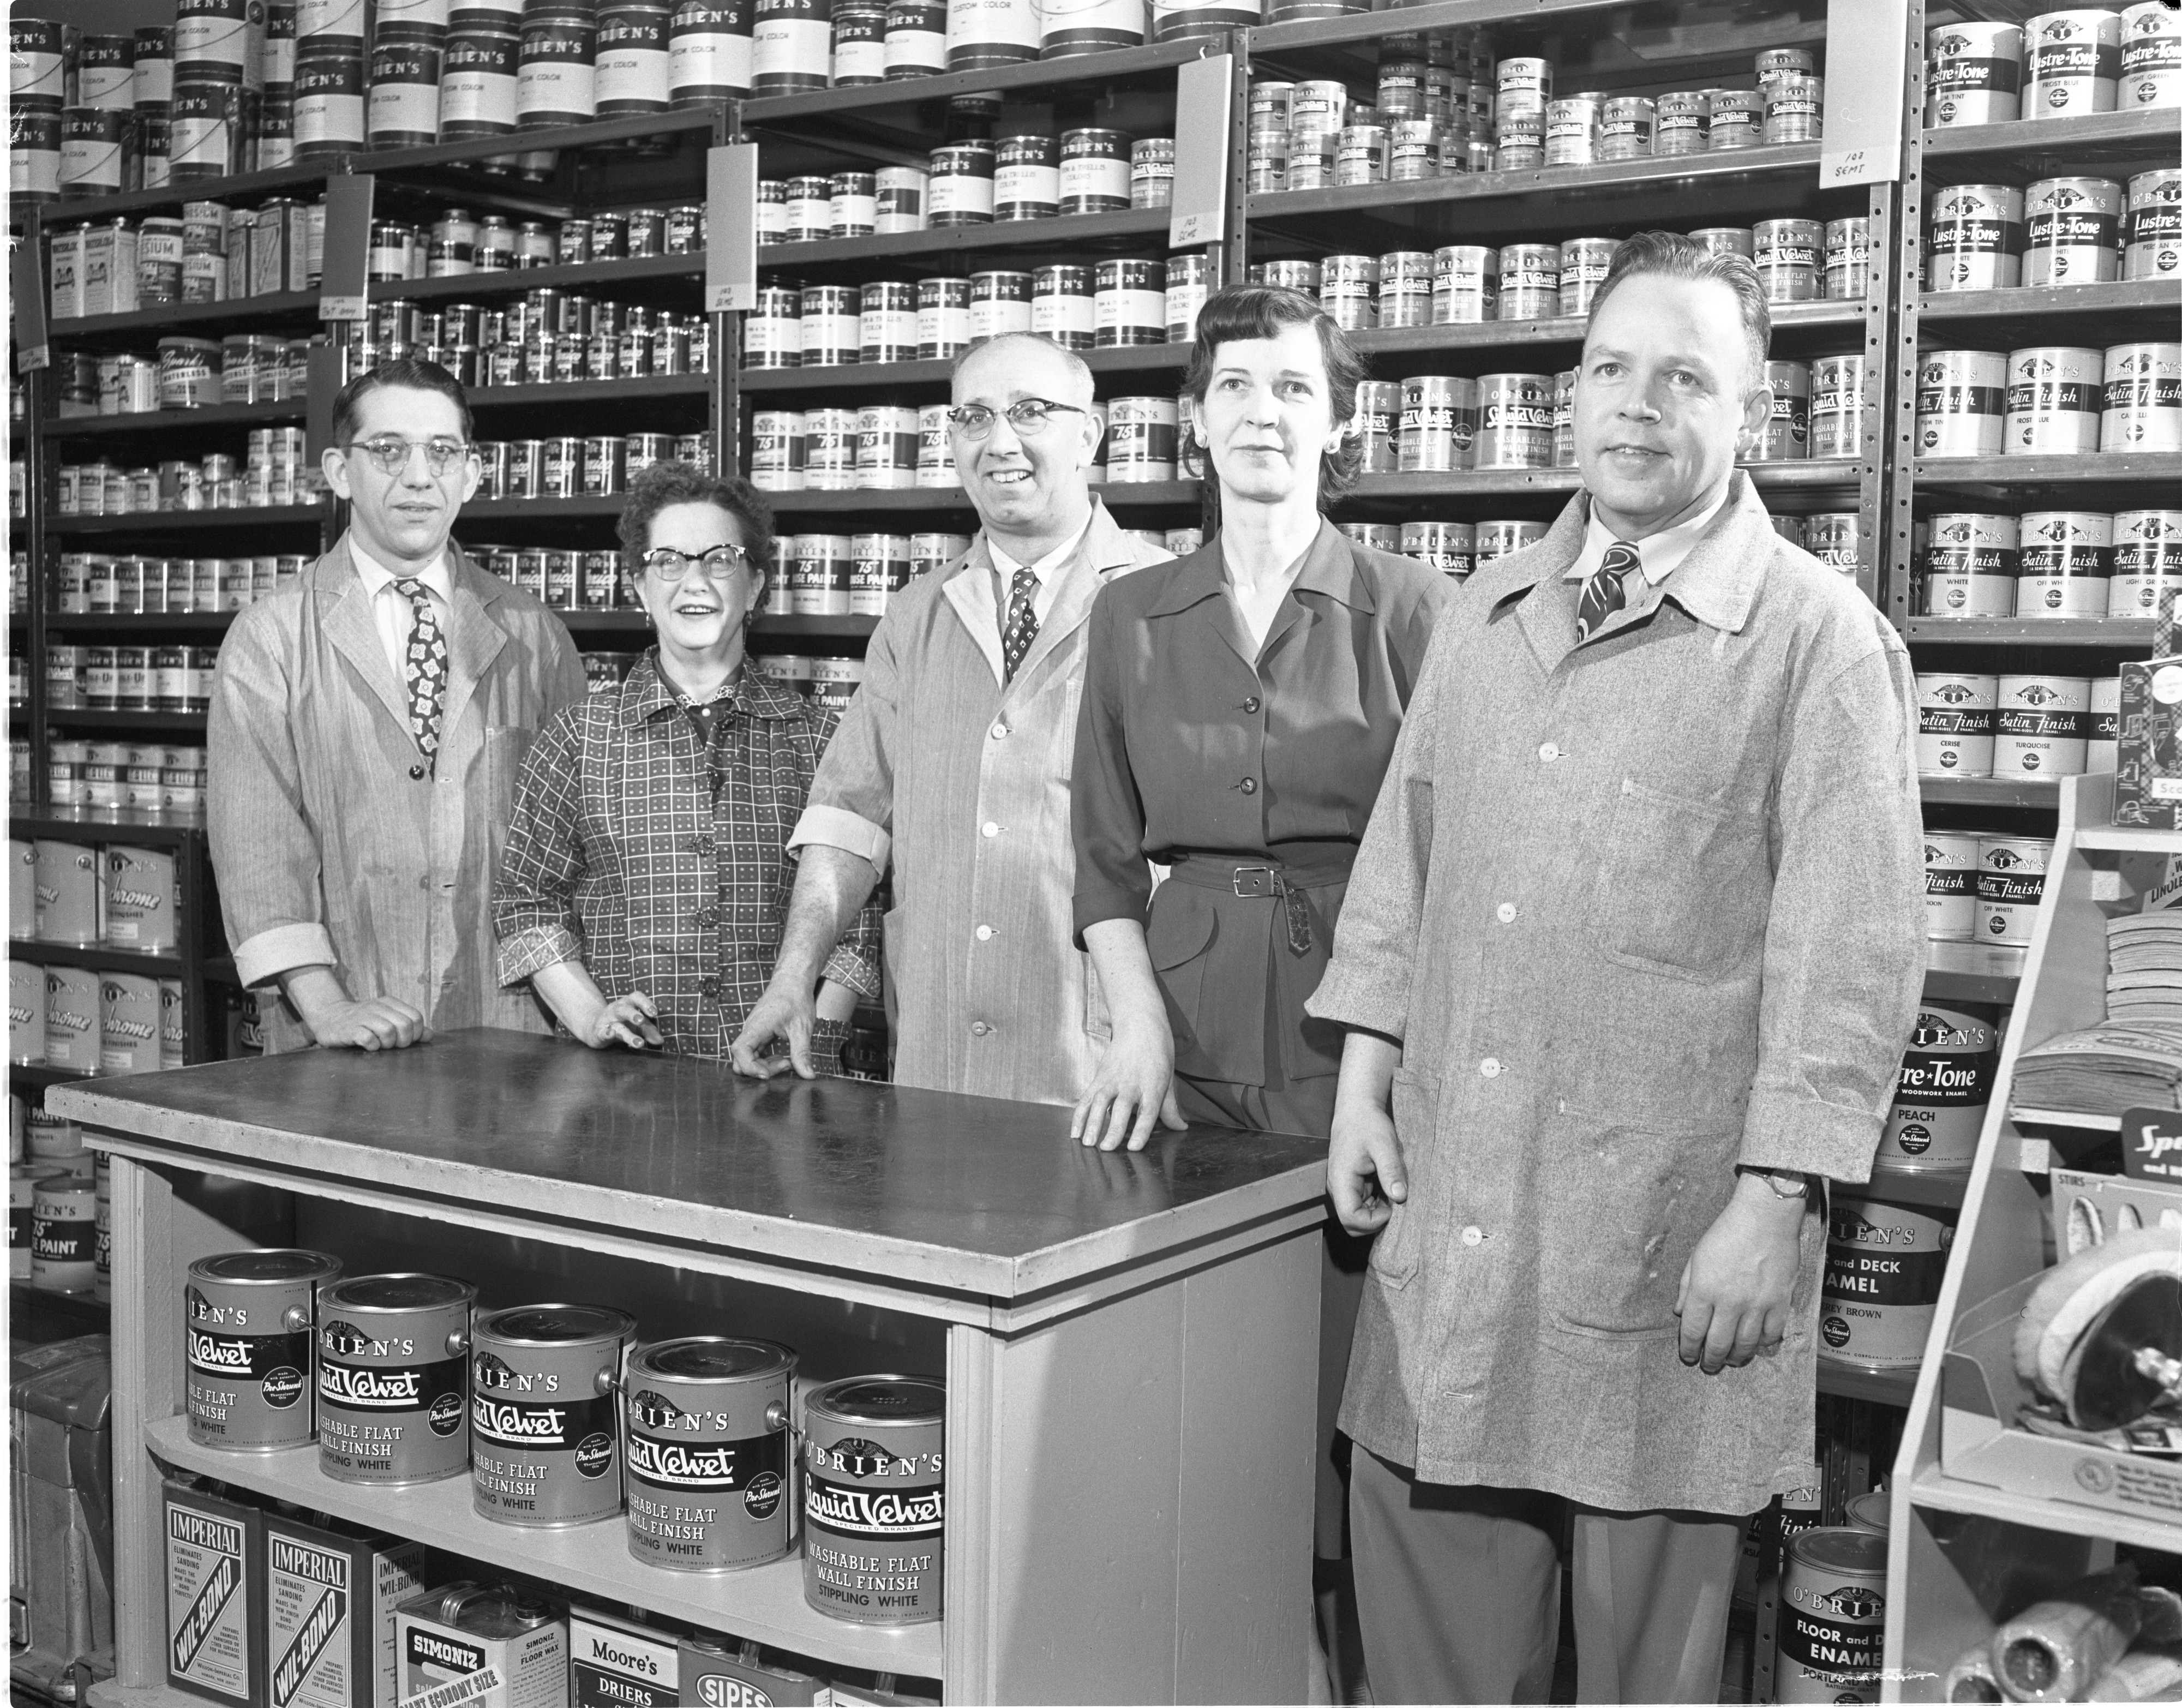 The Paint Pot - Owner E. C. Rowe & Employees, April 1953 image